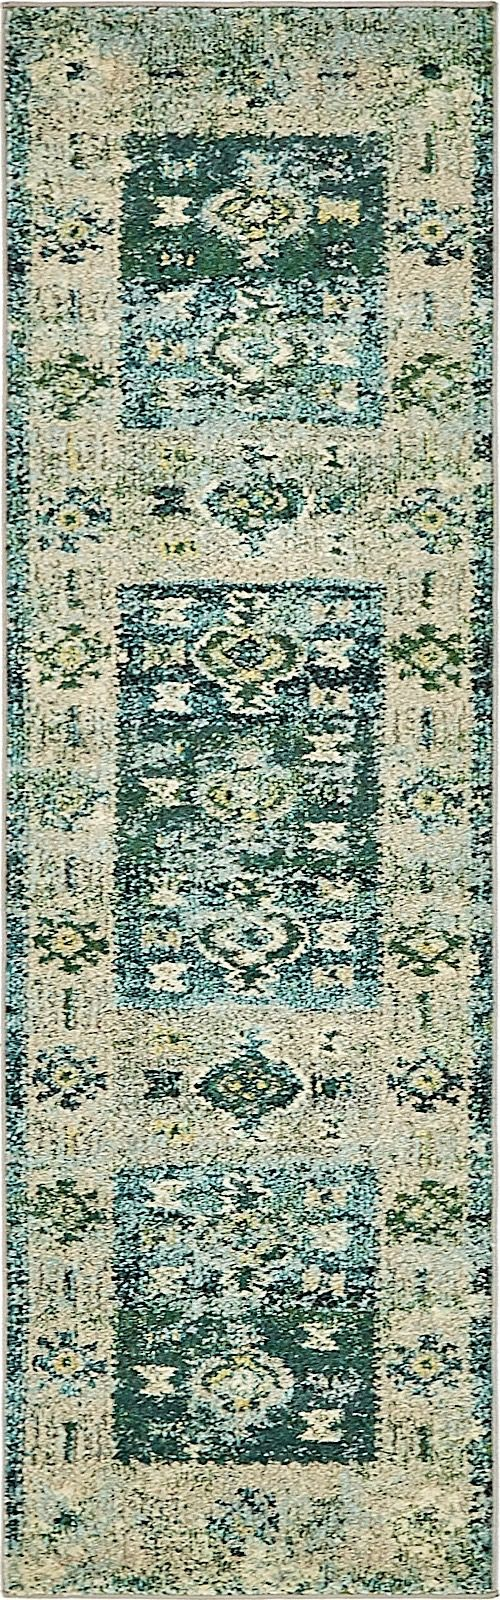 rugpal santa cruz transitional area rug collection